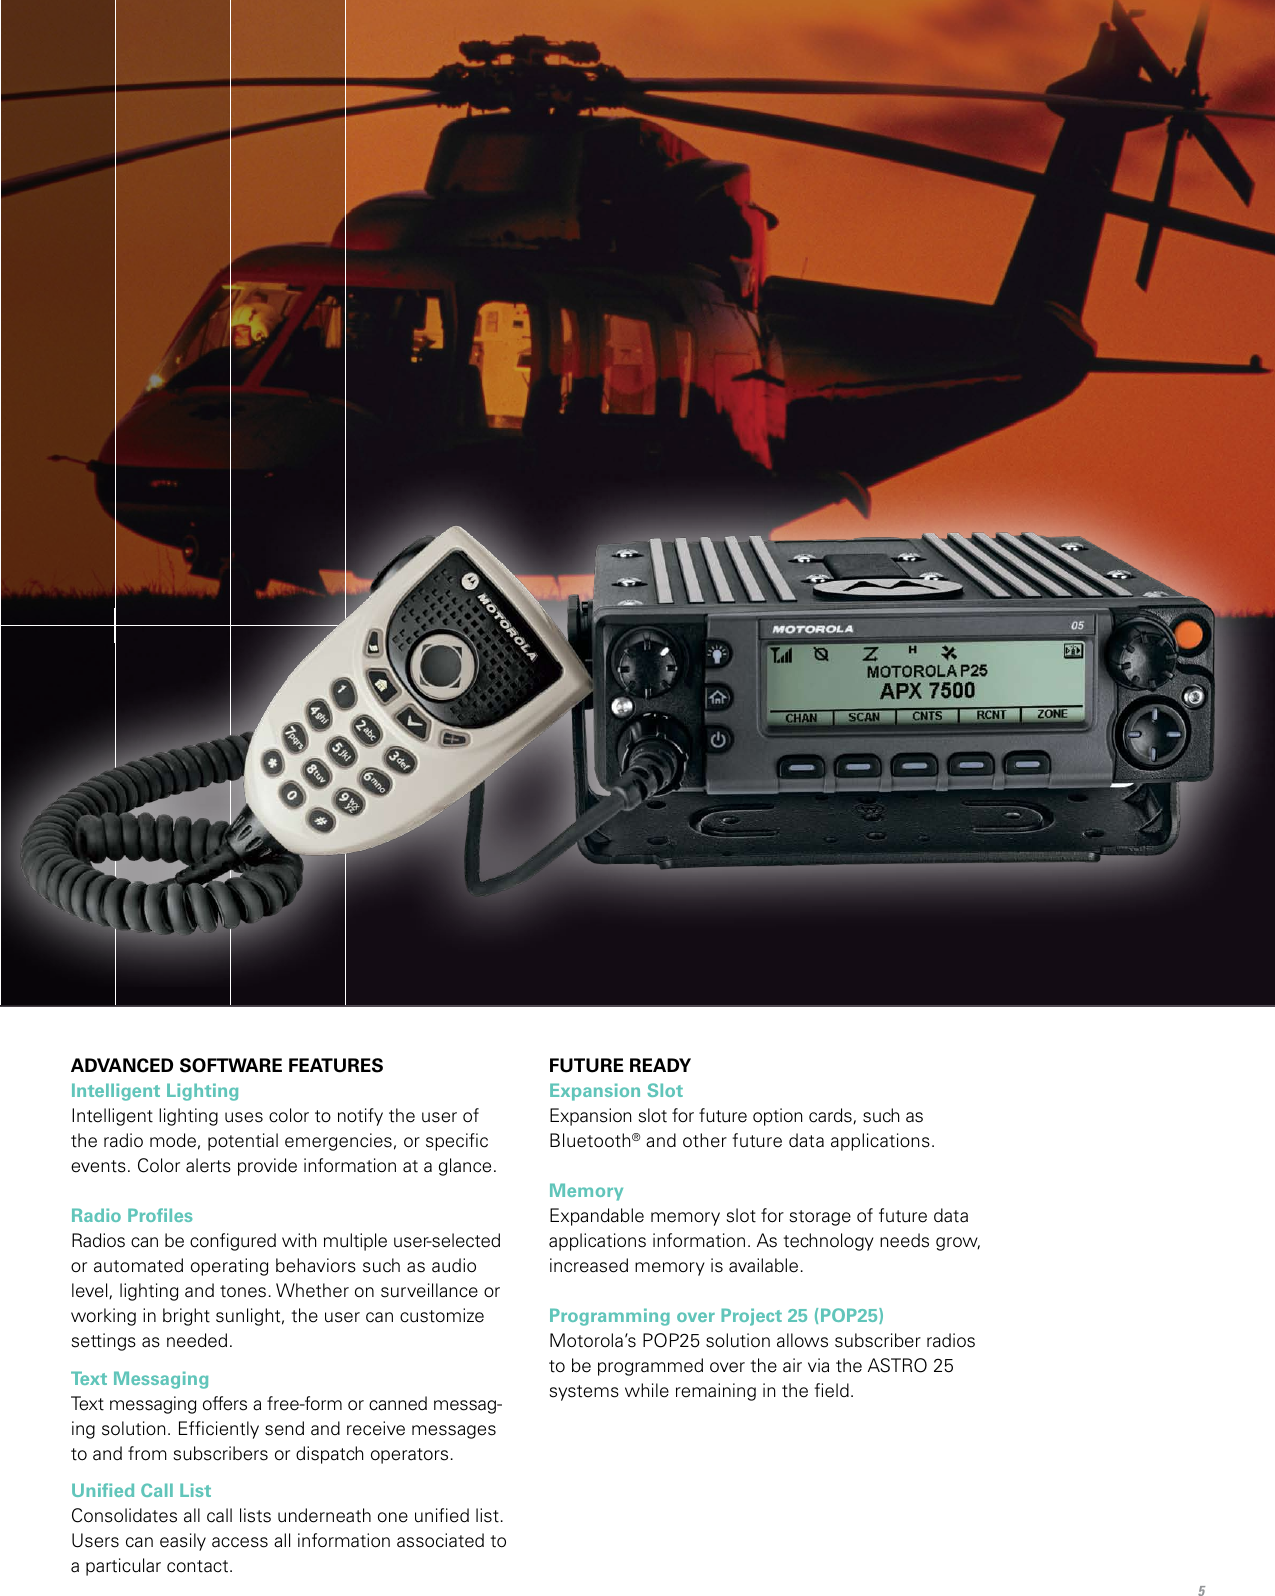 Motorola Apx 7500 Users Manual Mobile For Federal Markets